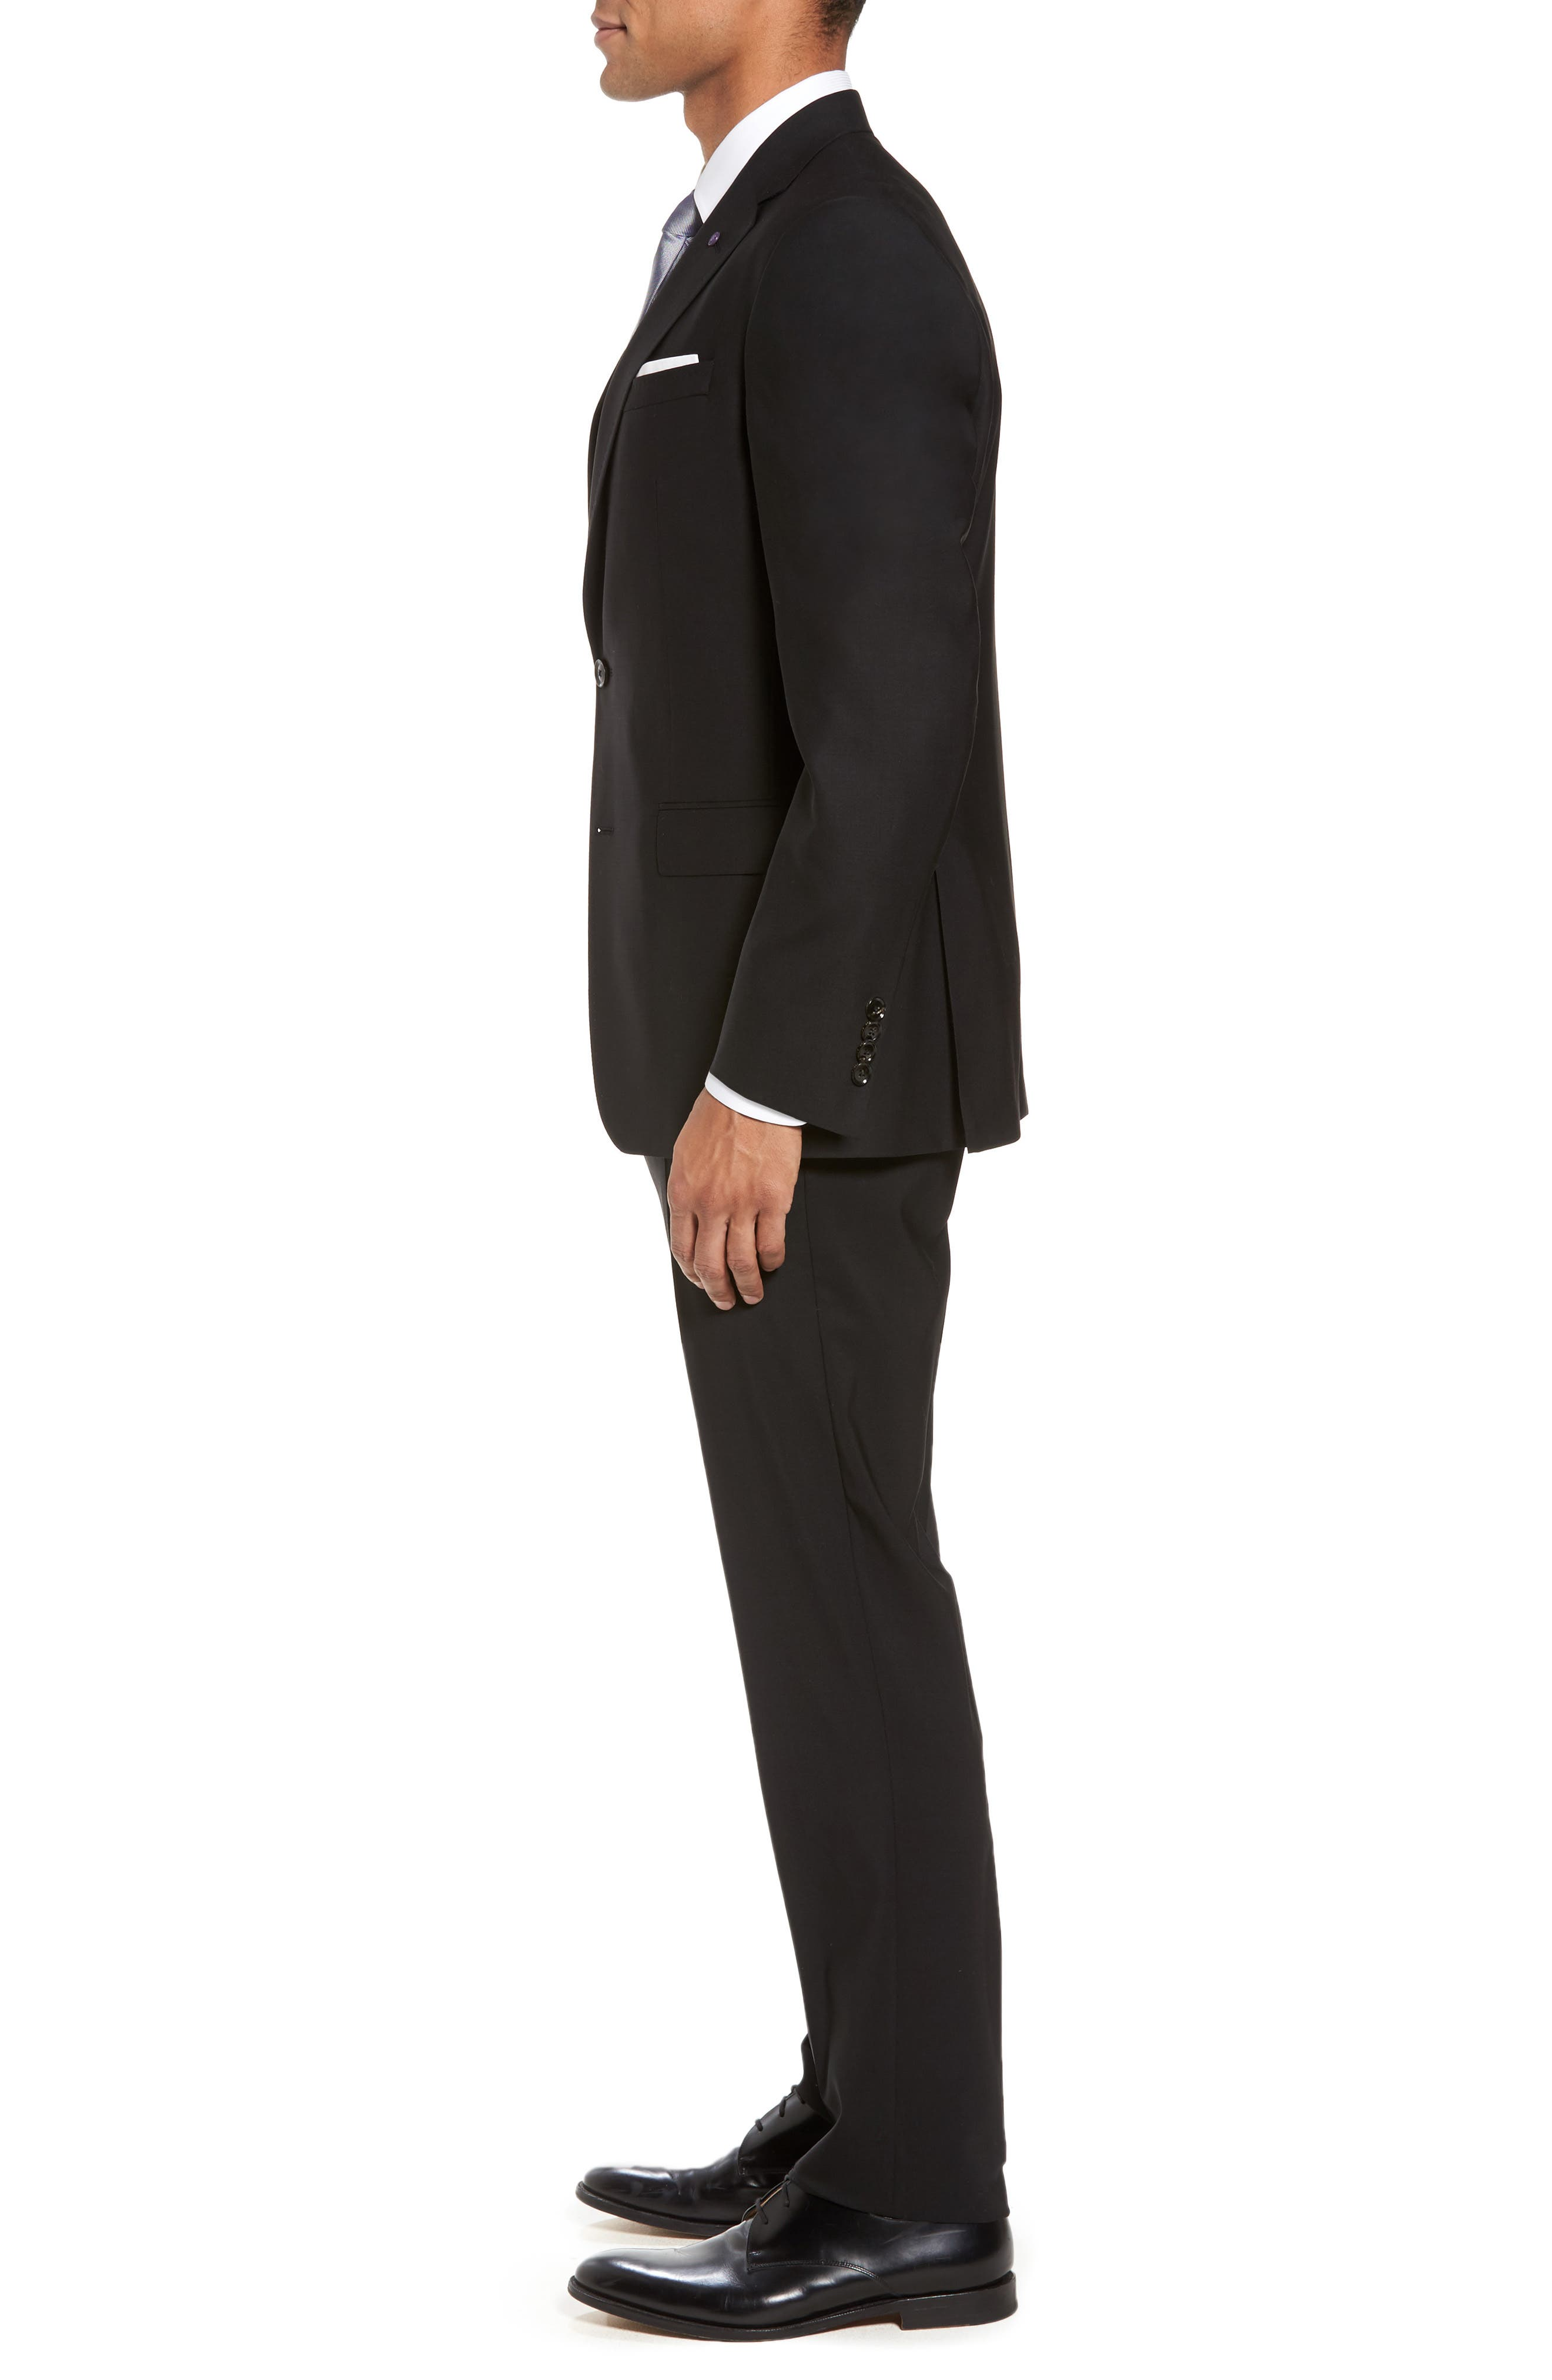 Jay Trim Fit Solid Wool Suit,                             Alternate thumbnail 3, color,                             Black